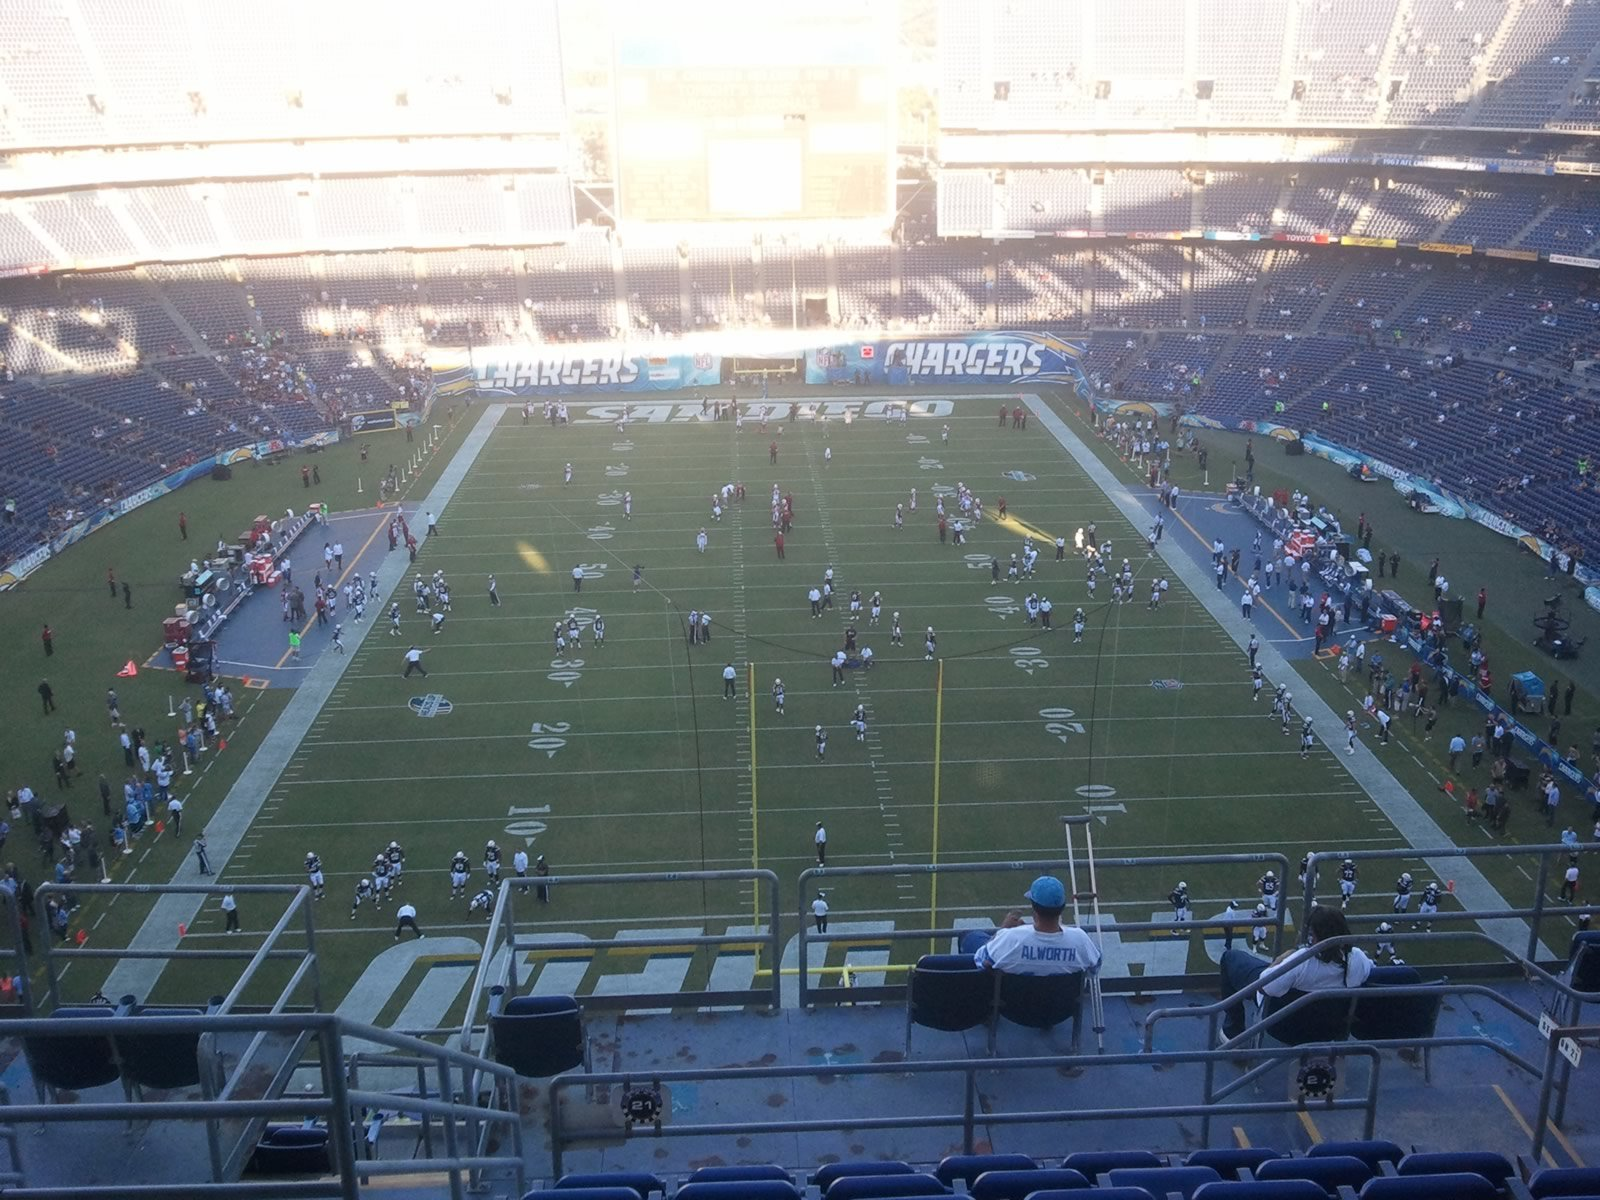 Seat View for Qualcomm Stadium View Level 21V, Row 12, Seat 15